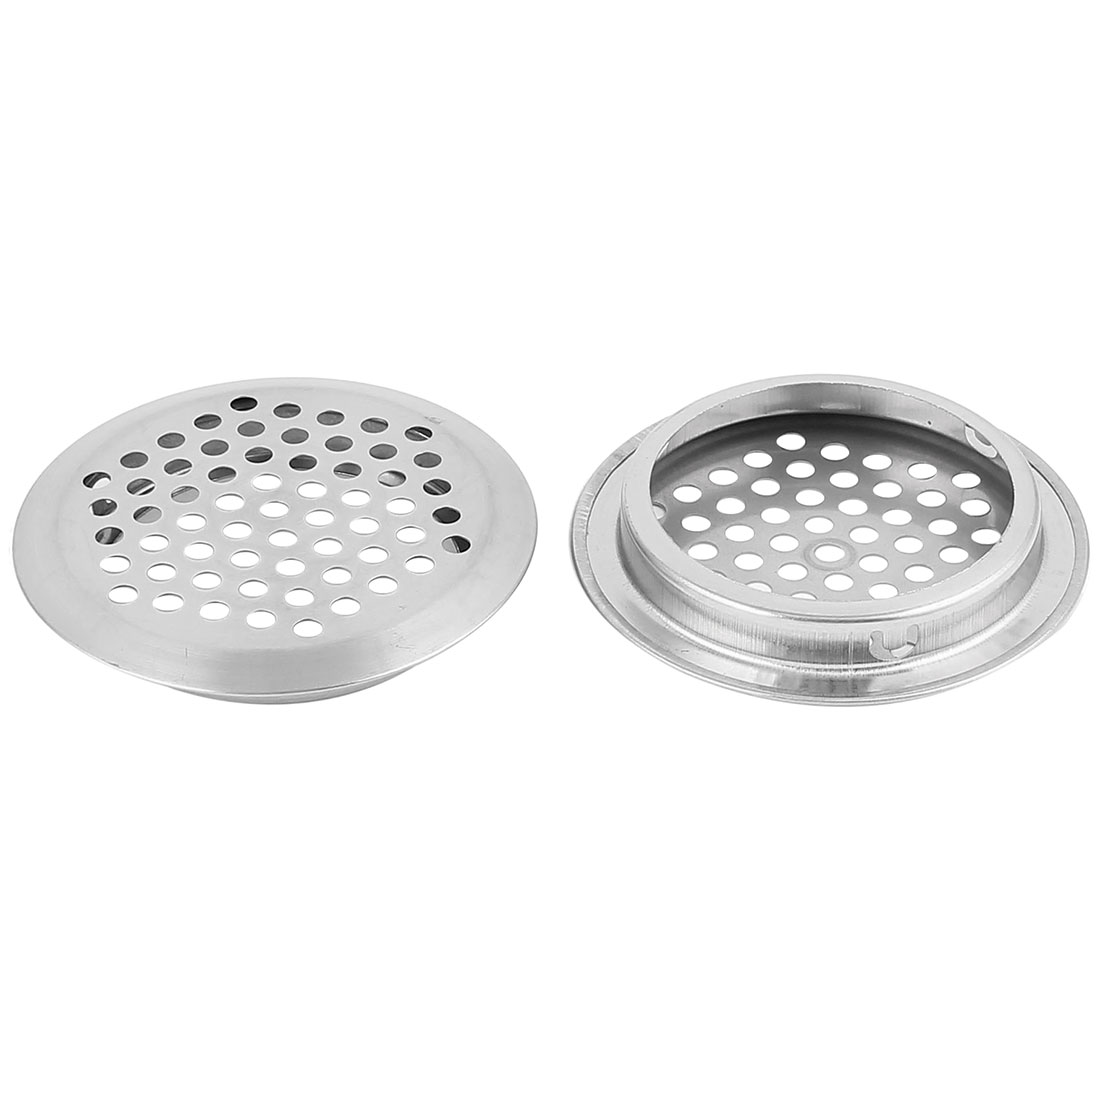 53mm Bottom Dia Round Panel Shoes Cupboard Cabinet Air Vent Louver Cover 2pcs